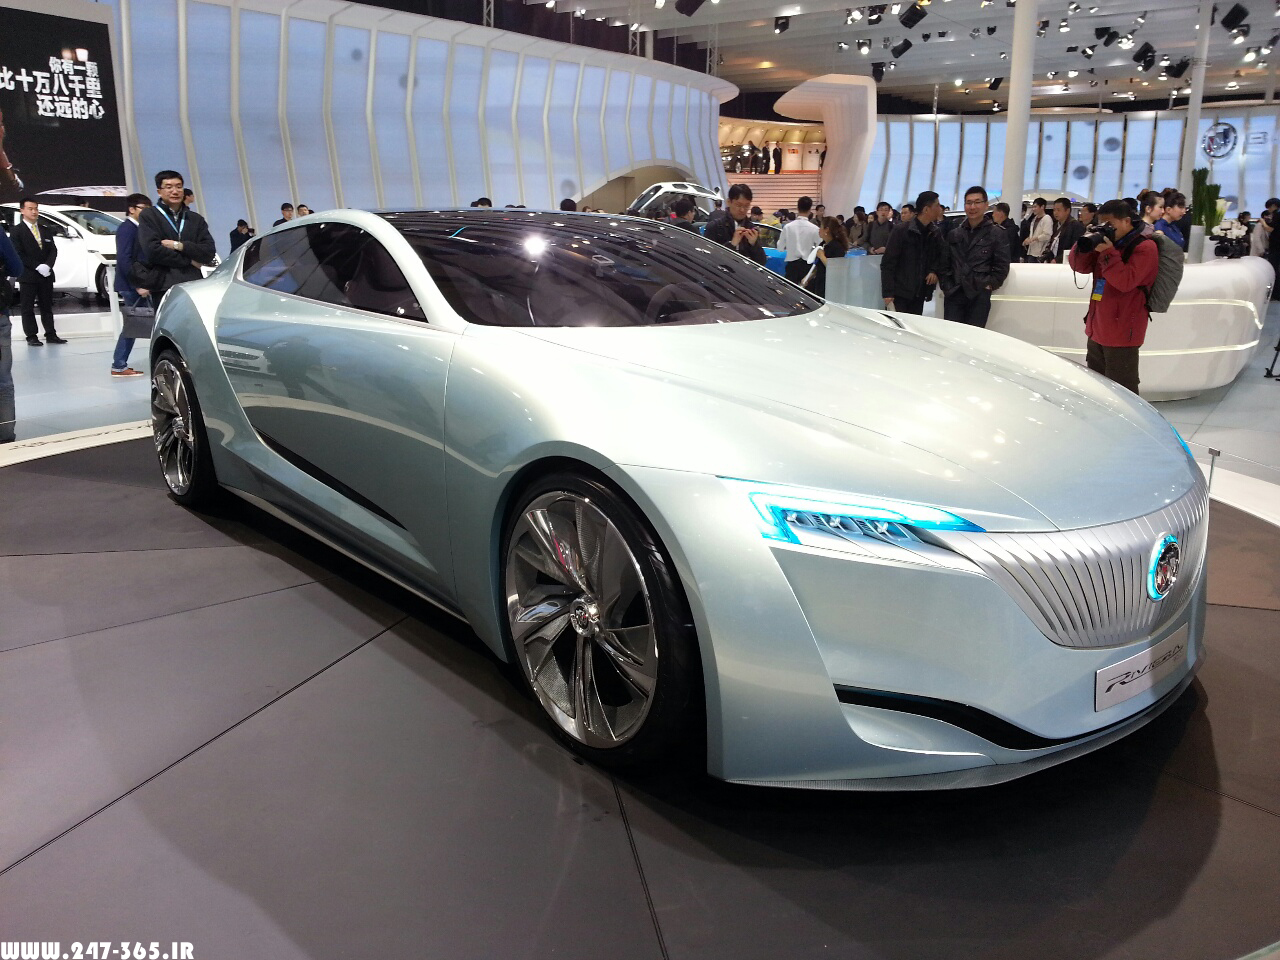 http://dl.247-365.ir/pic/automobile/buick_riviera_concept/Buick_Riviera_Concept_02.jpg